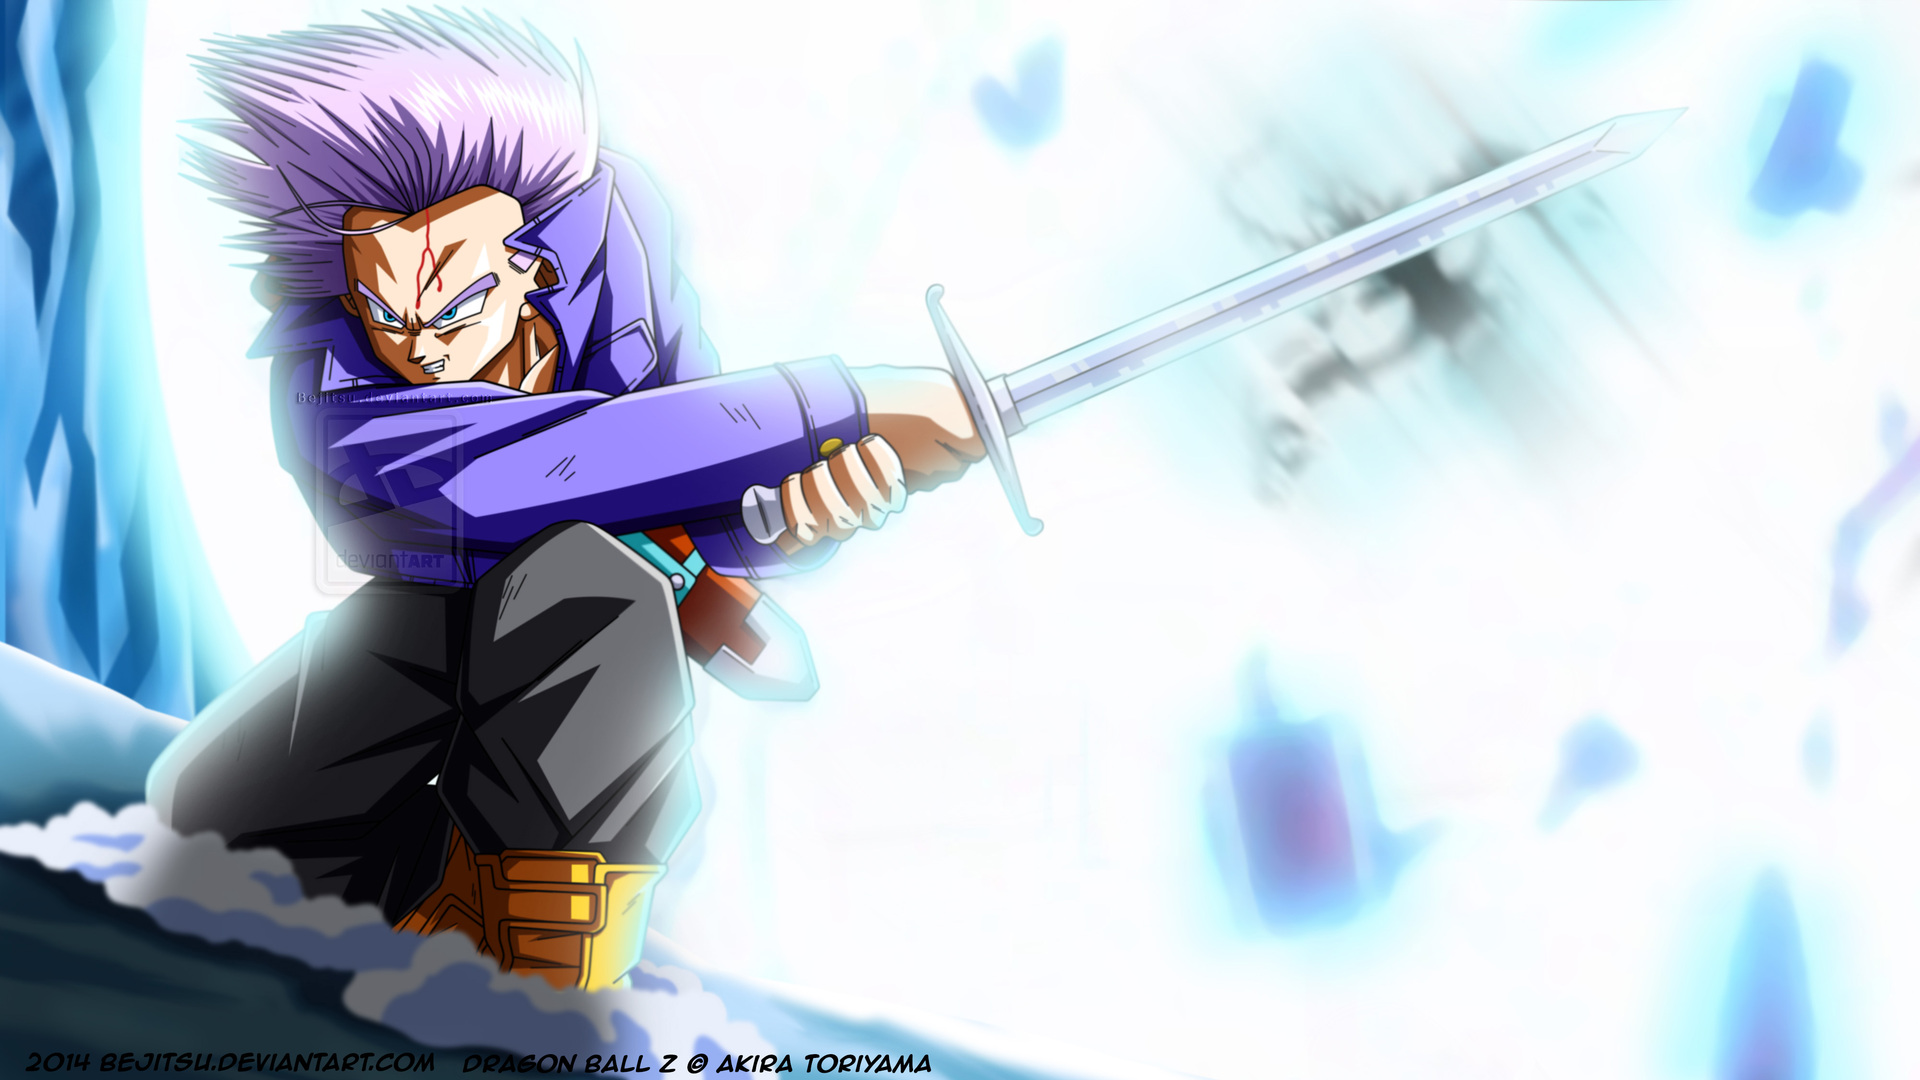 1920x1080 Trunks Dragon Ball Z 4k Laptop Full Hd 1080p Hd 4k Wallpapers Images Backgrounds Photos And Pictures